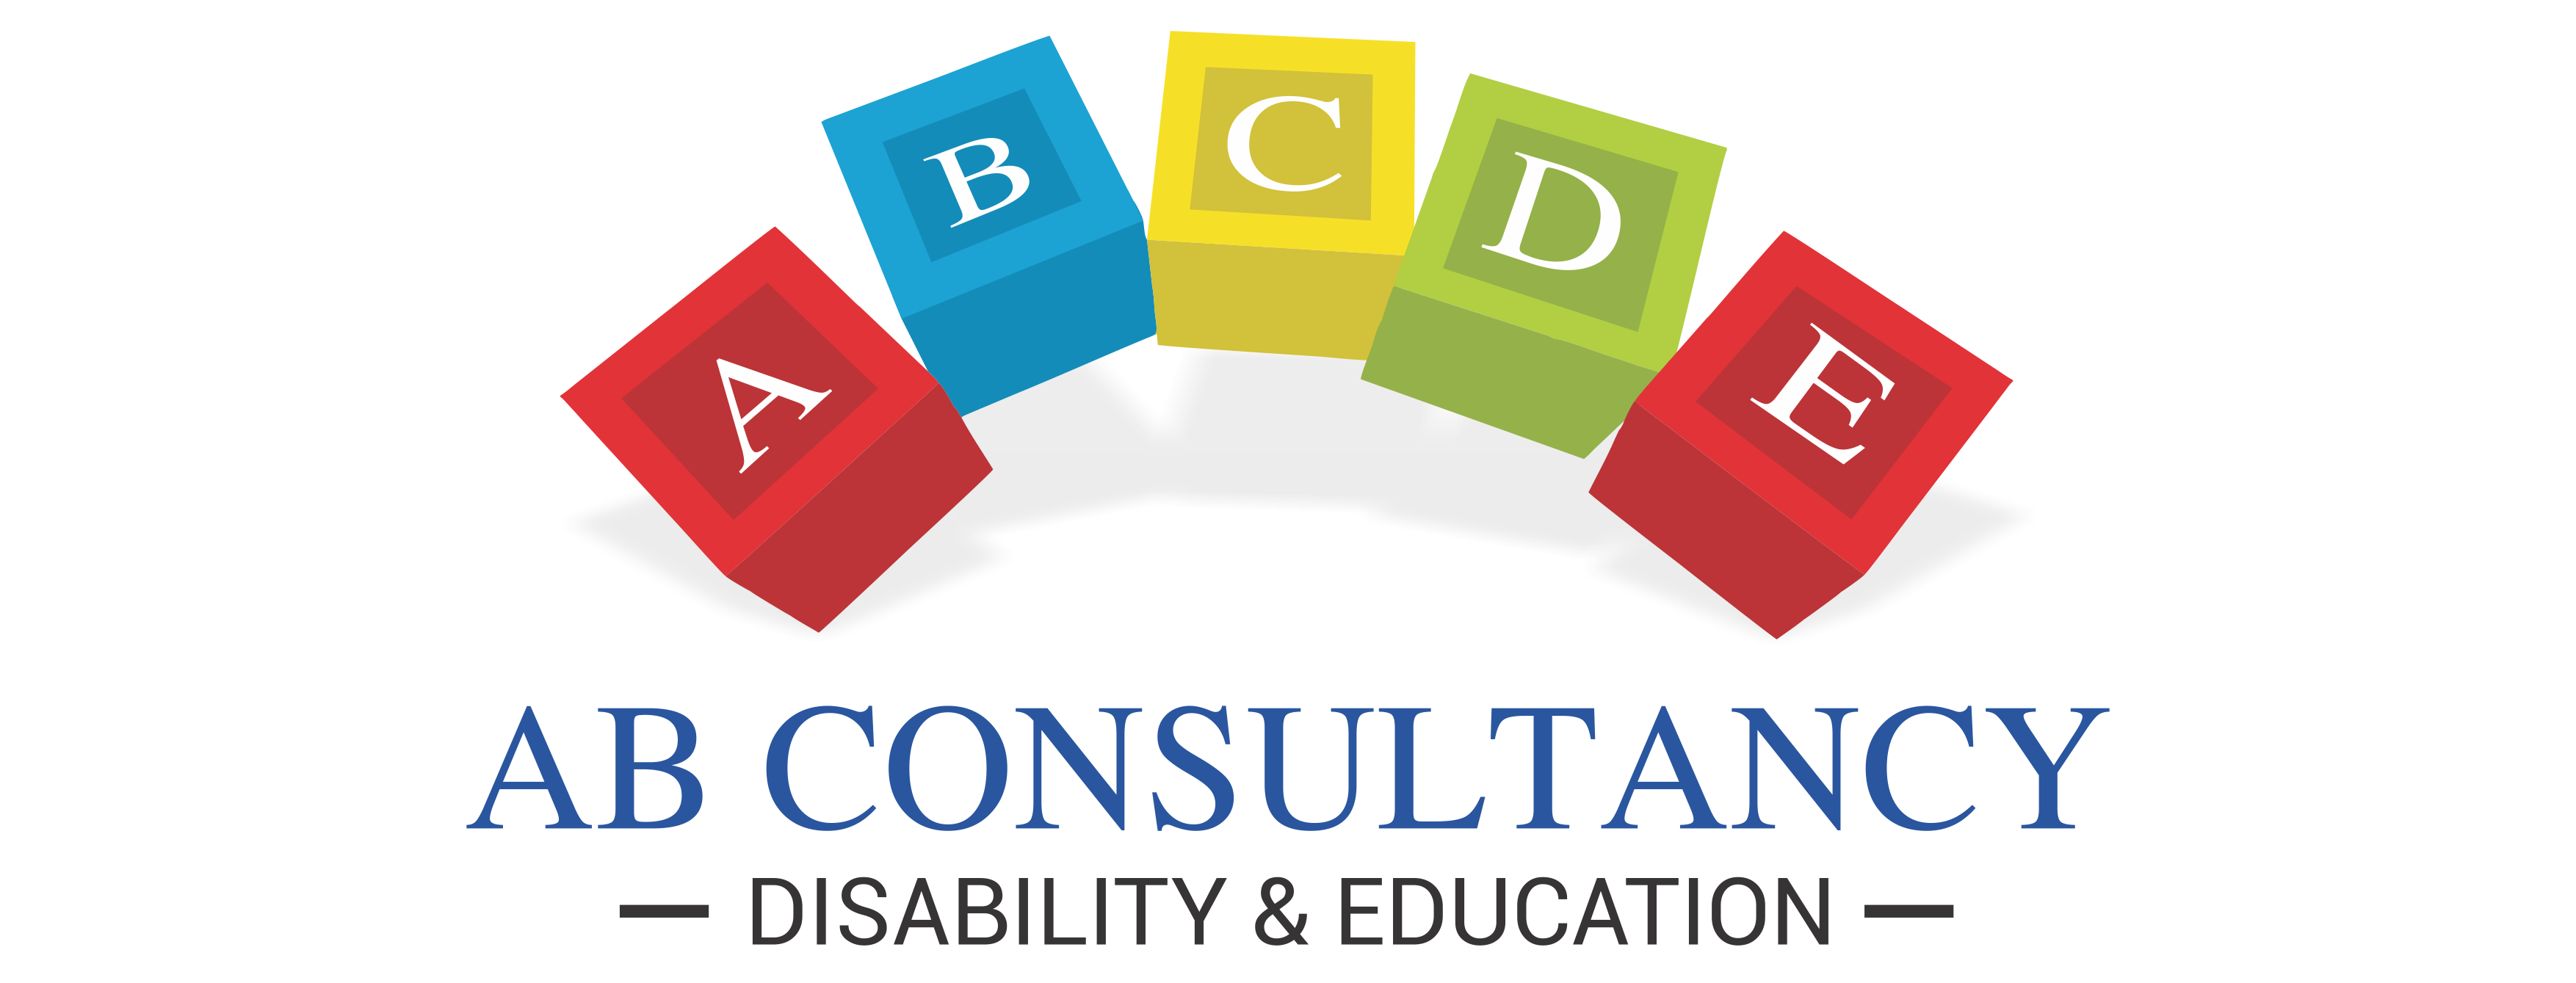 AB Consultancy Disability & Education